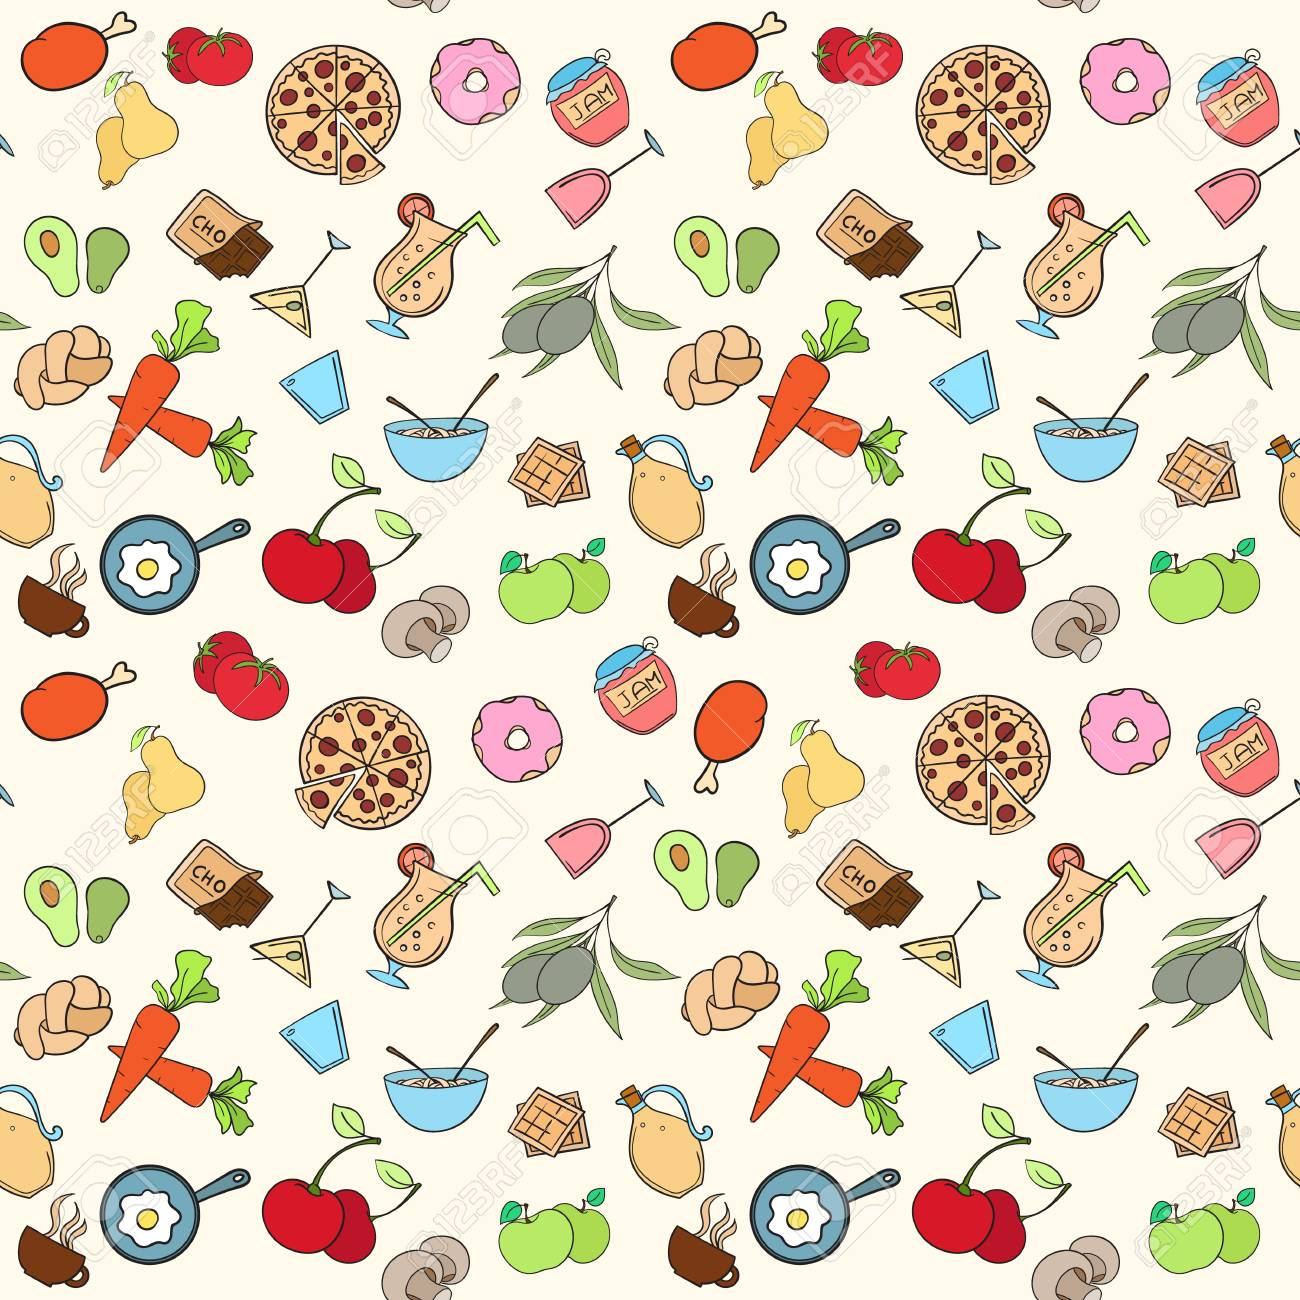 seamless food pattern can be used for wallpaper, website backgroundseamless food pattern can be used for wallpaper, website background, wrapping paper restaurant